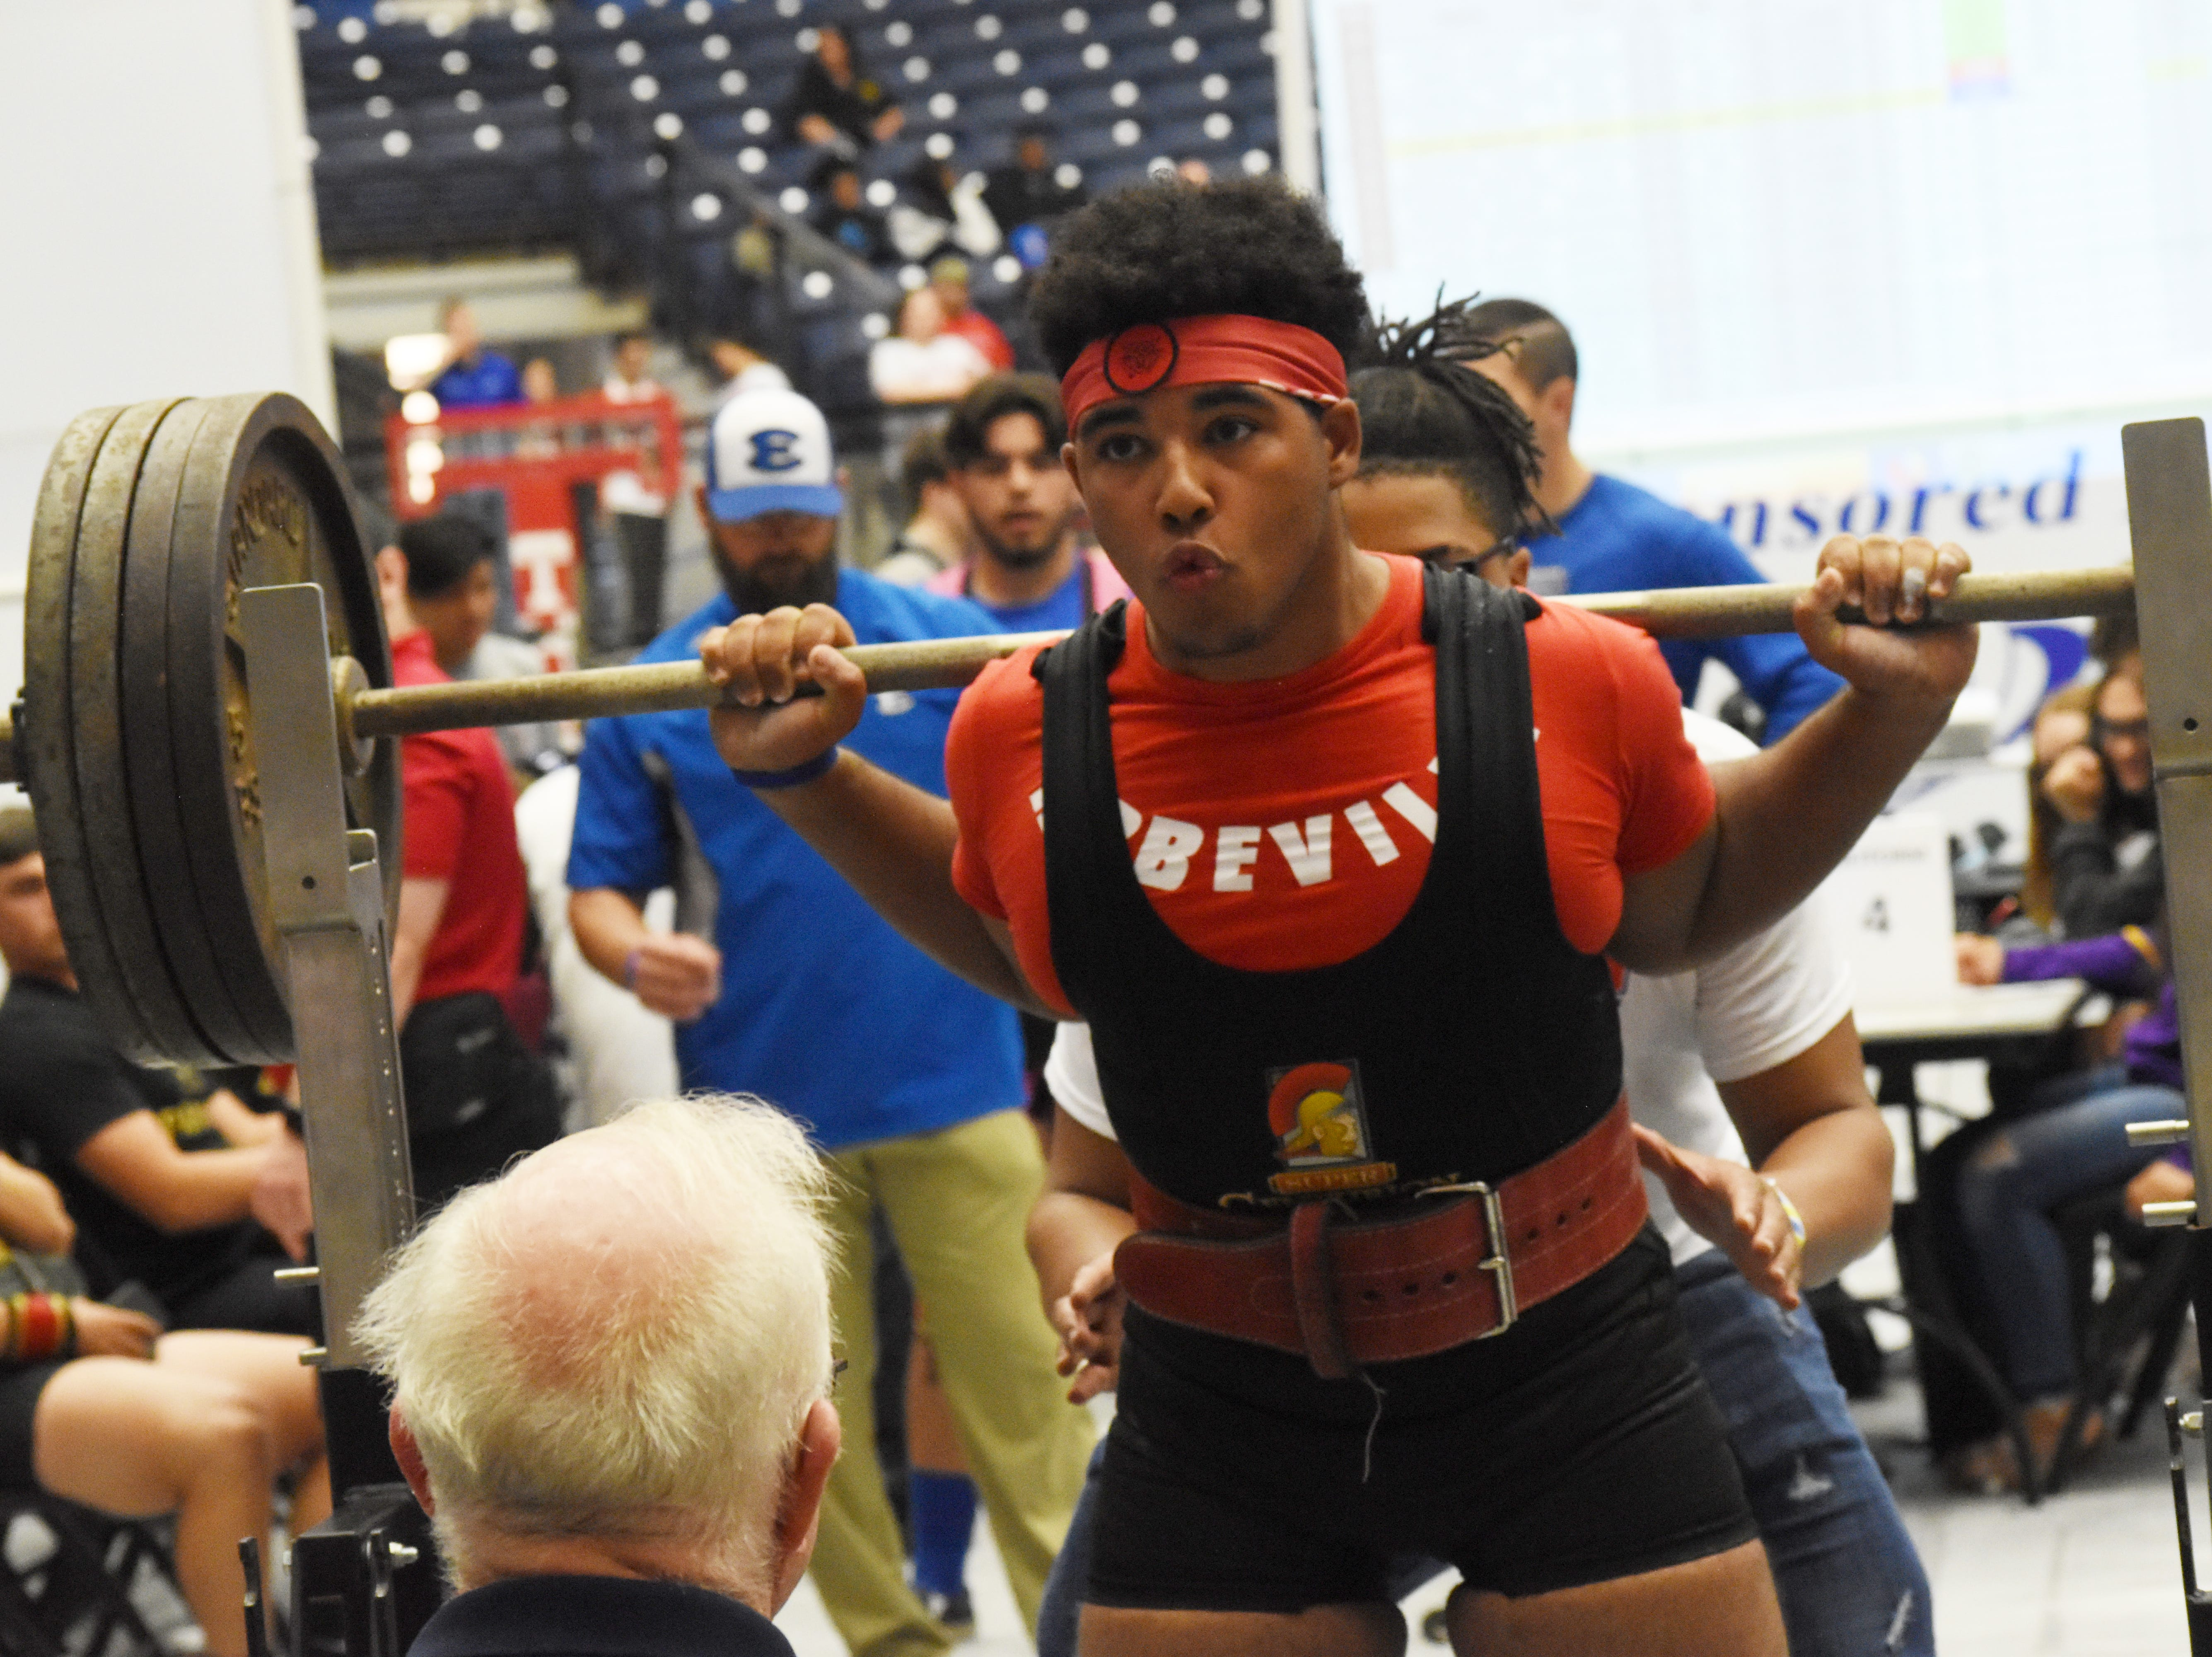 The 2019 All-State Sugar Bowl LHSAA Powerlifting State Championships held at the Rapides Parish Coliseum opened Thursday, March 14, 2019  with the Division II and III boys competing. On Friday, girls in Divisions I-V will compete. The state championships wrap up Saturday with Division I, IV and V boys competing.